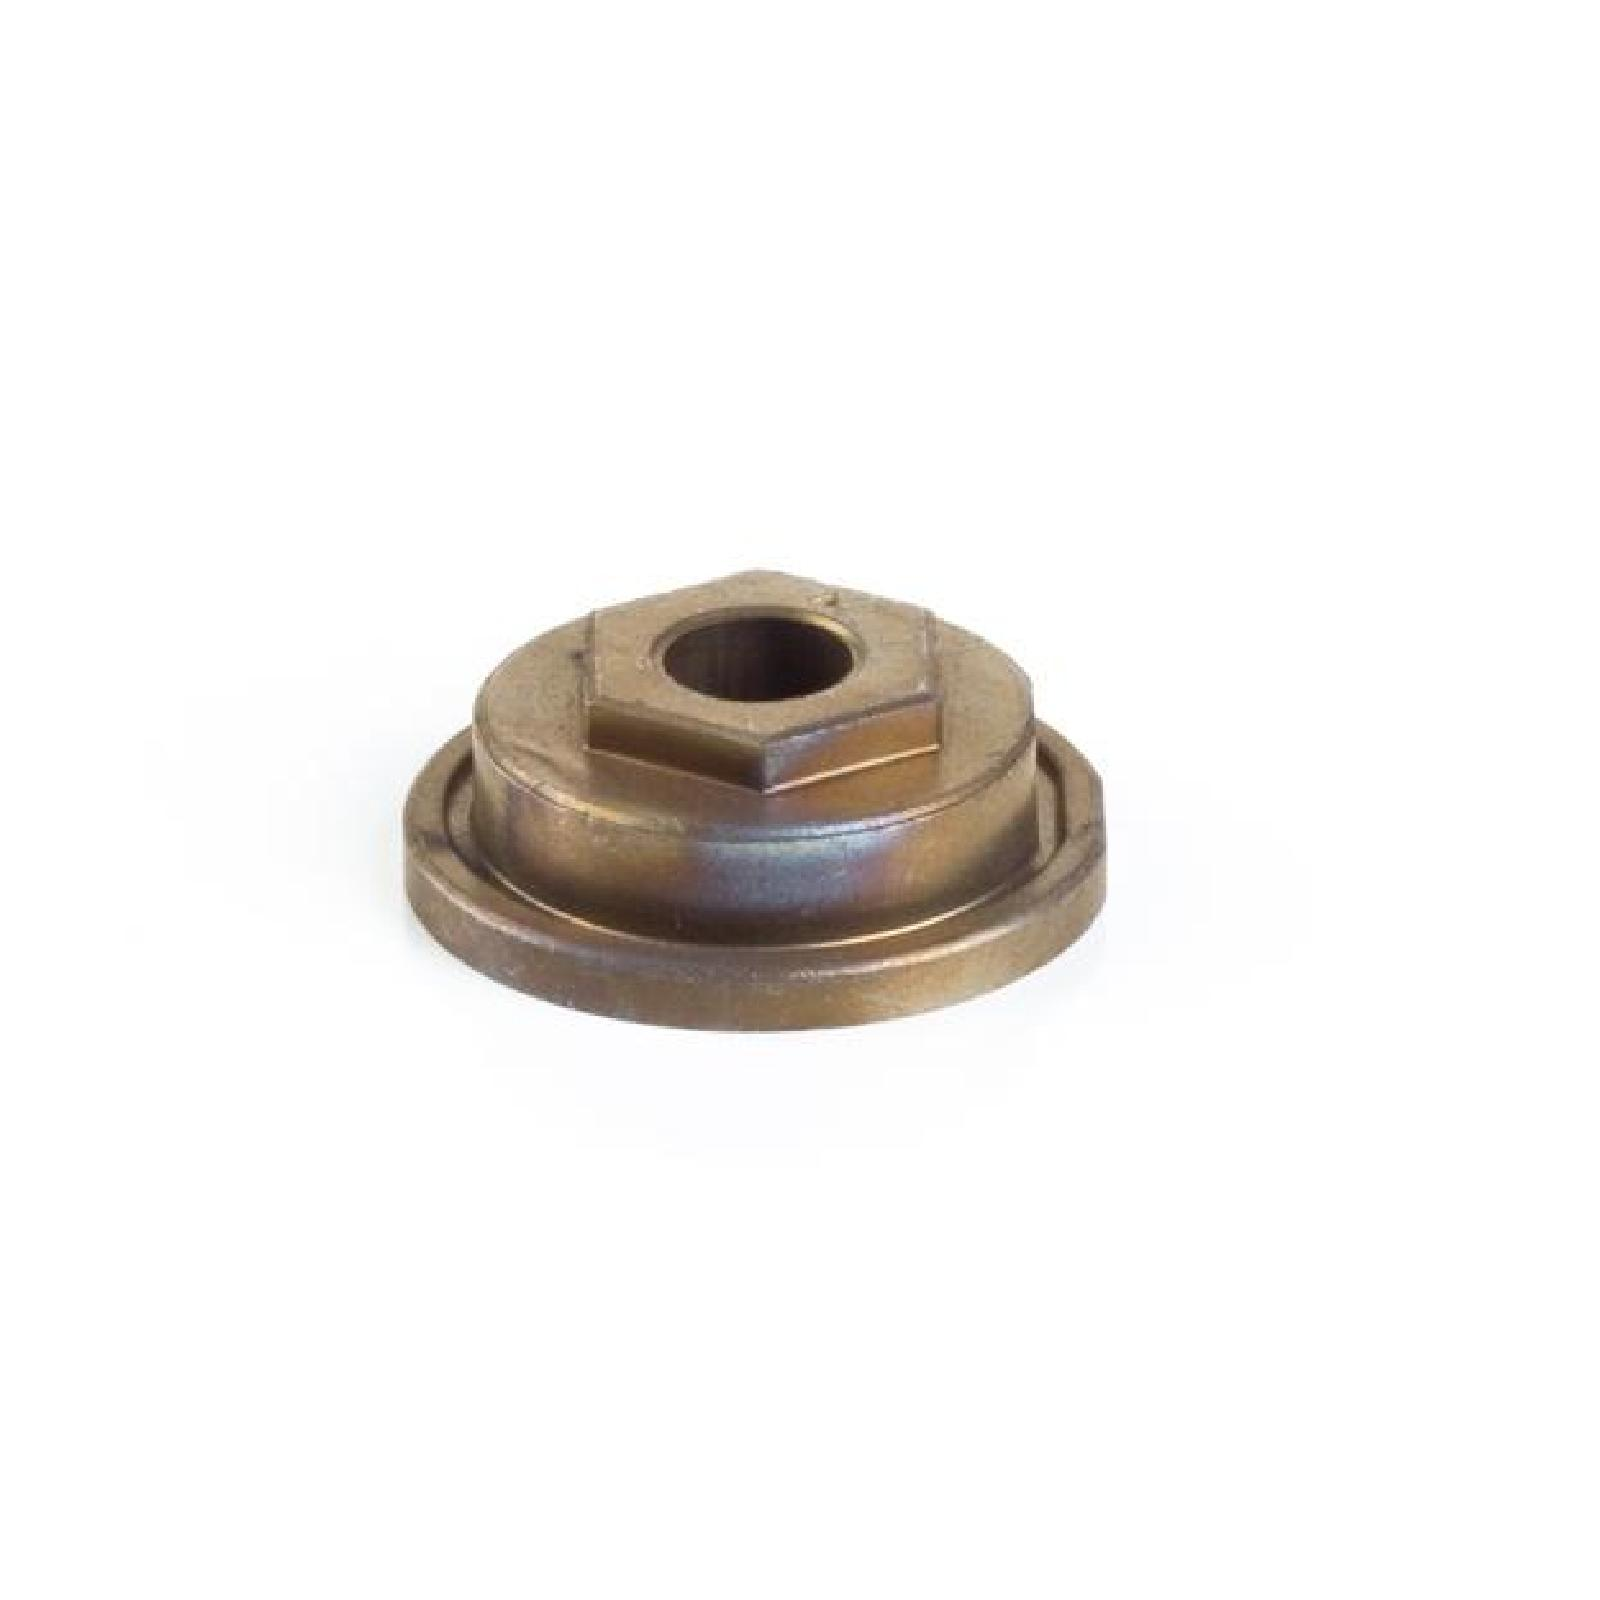 BEARING SECTOR GEAR part# 94123MA by Briggs & Stratton